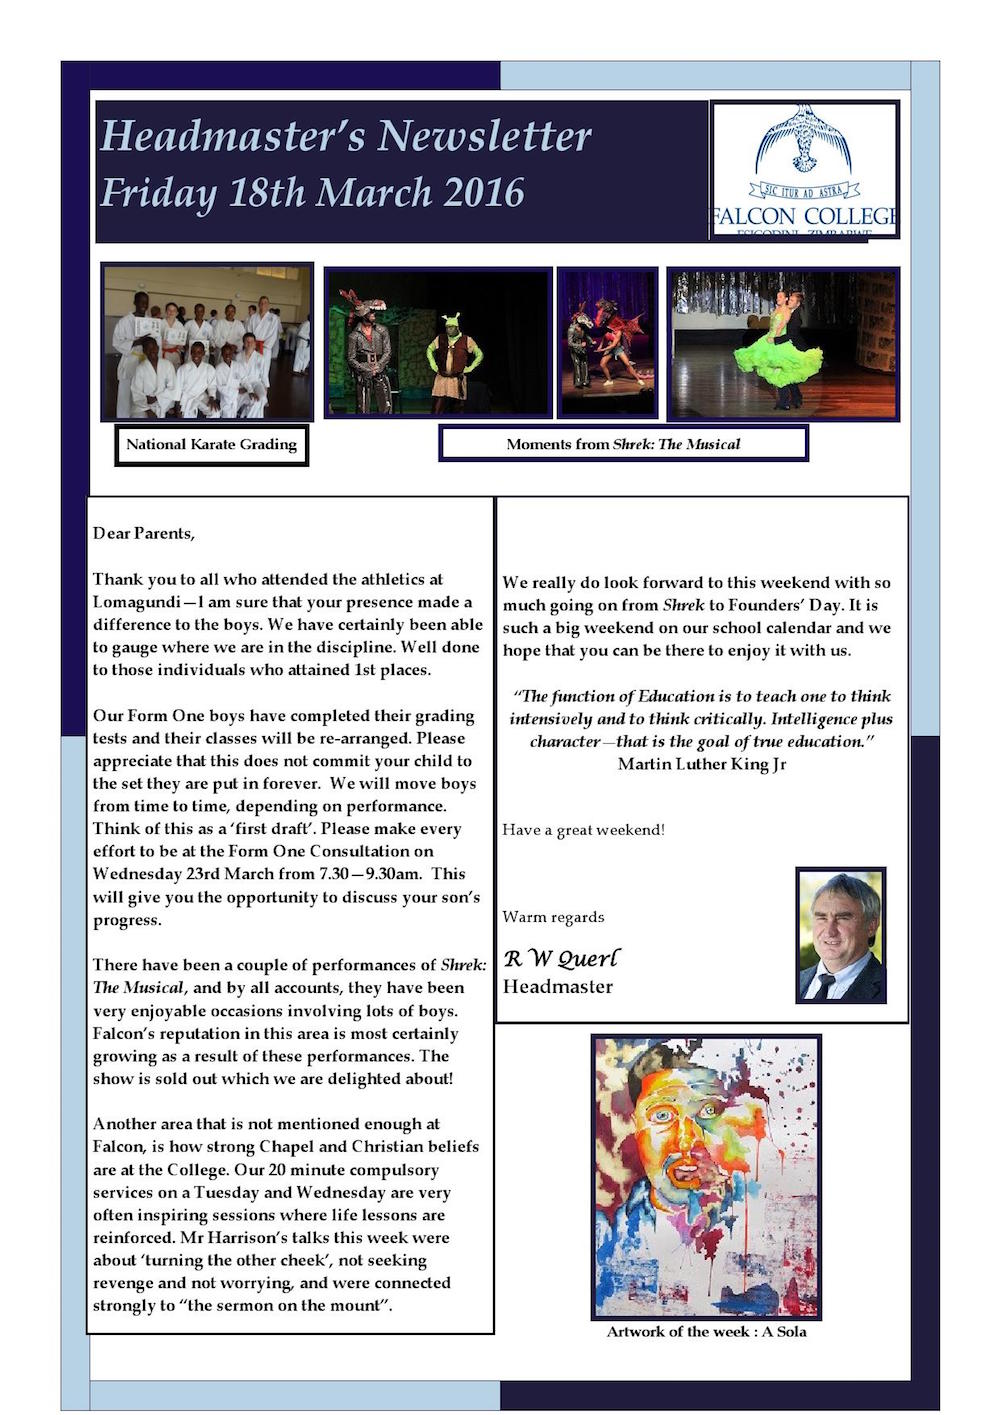 Headmaster's Newsletter Friday 18th March 2016 edited_000001